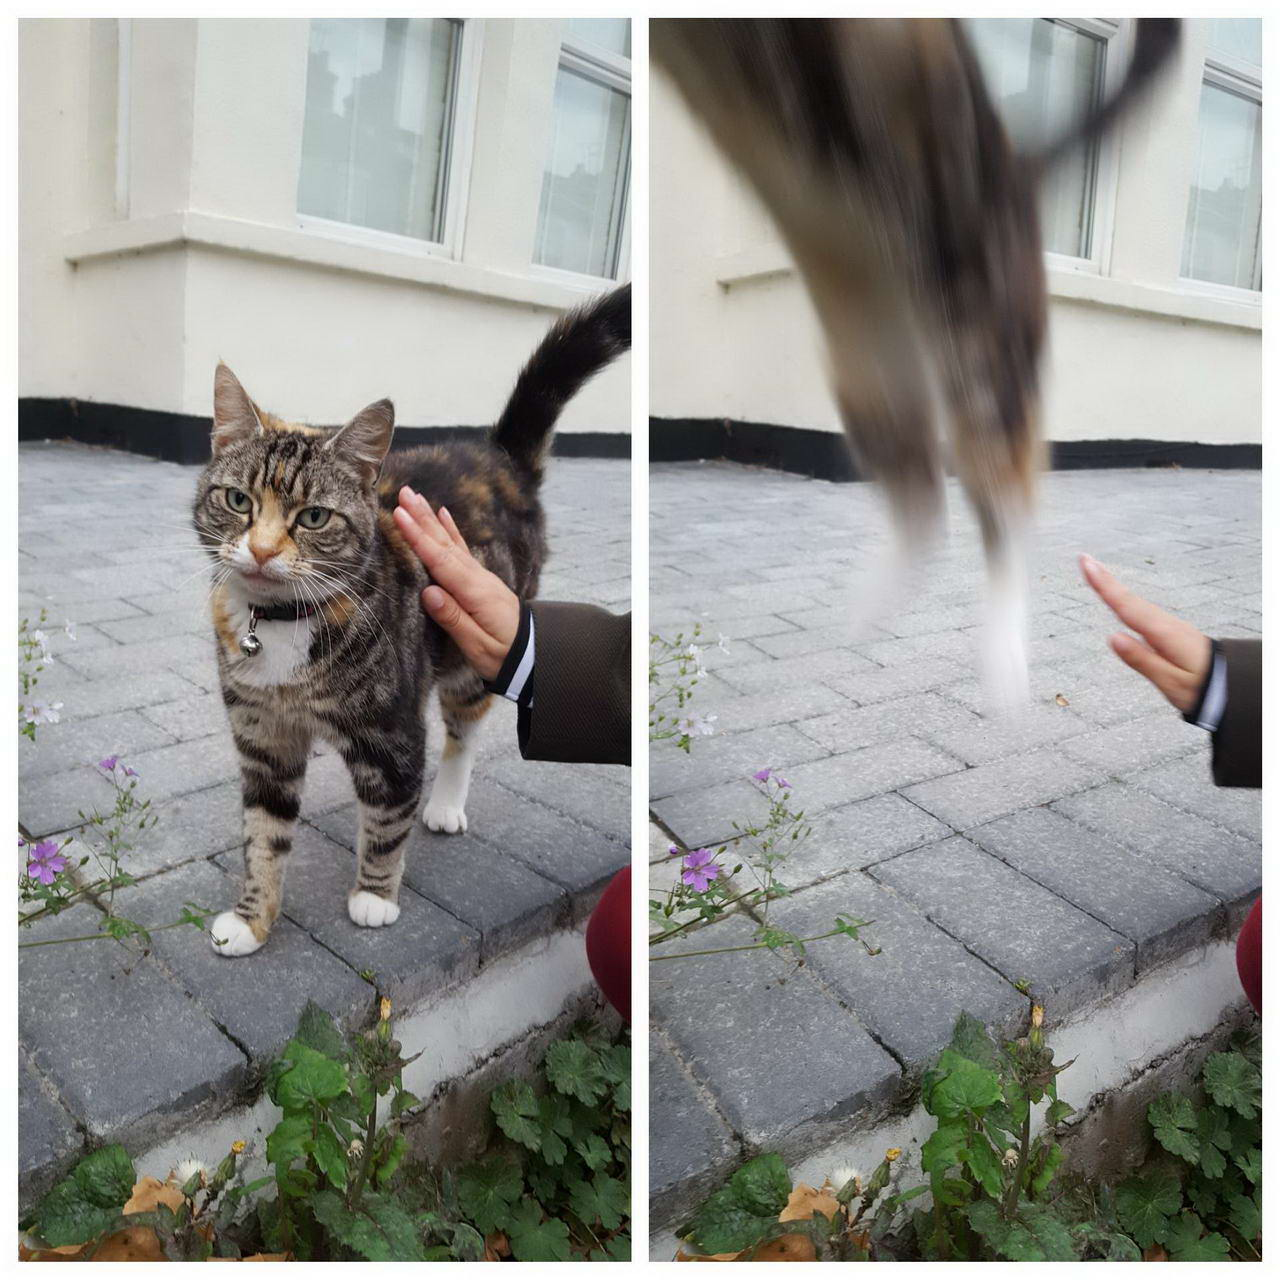 Funny Pictures Taken At The Right Time (42 Photos)